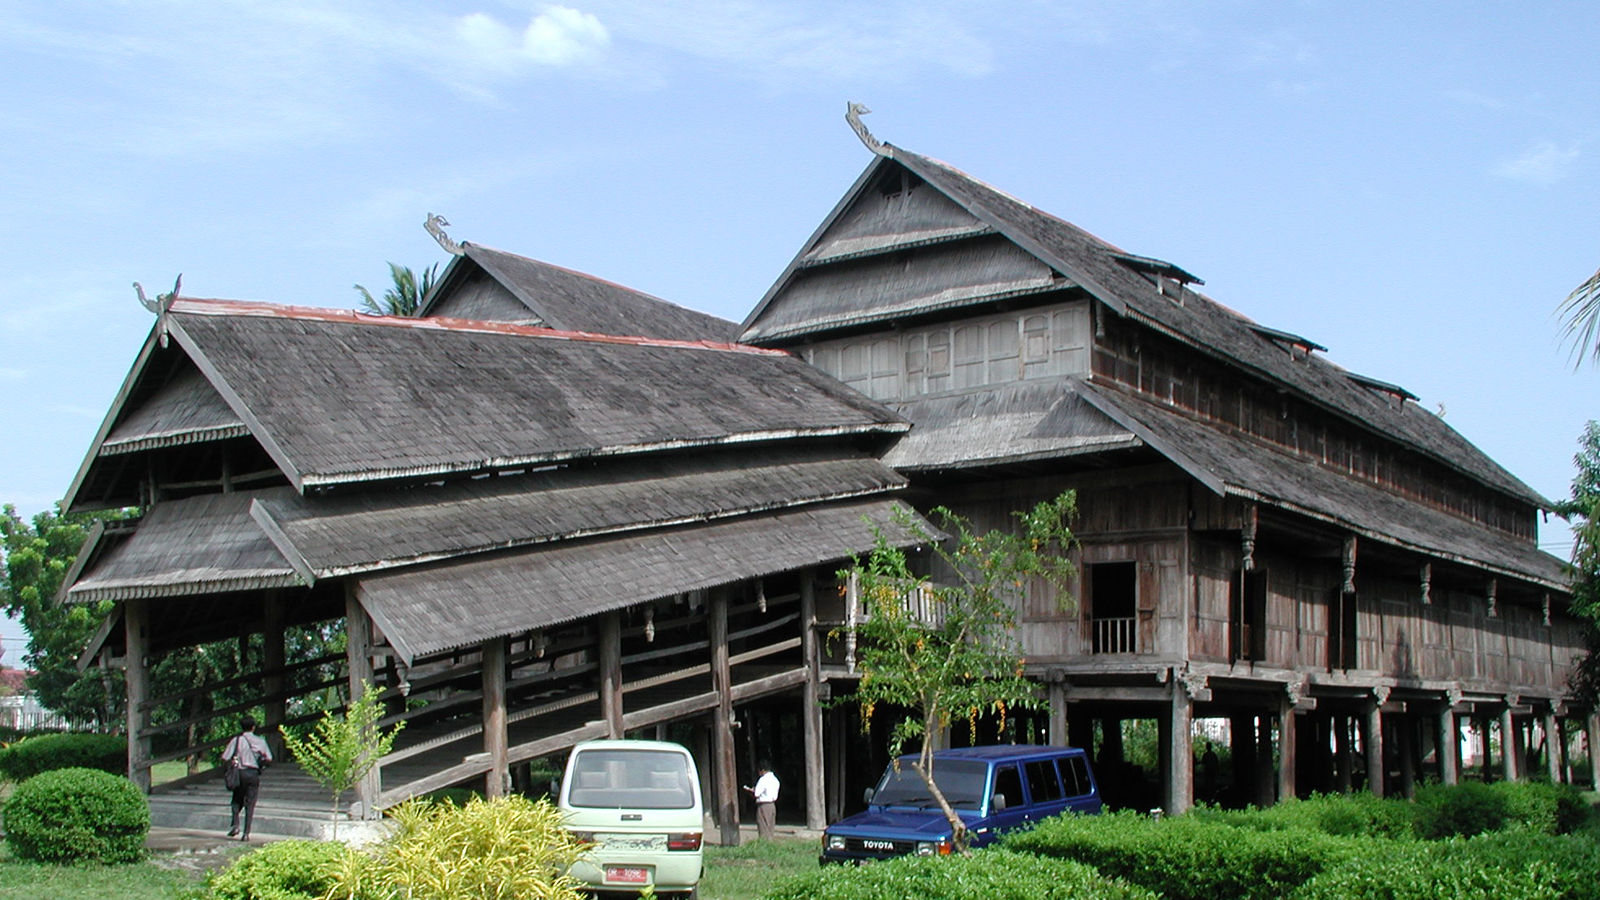 Cooperation Project for the Conservation of Traditional Wooden Buildings in Indonesia under the Cooperation Project for the Conservation and Restoration of Cultural Properties and Buildings in the Asia-Pacific Region